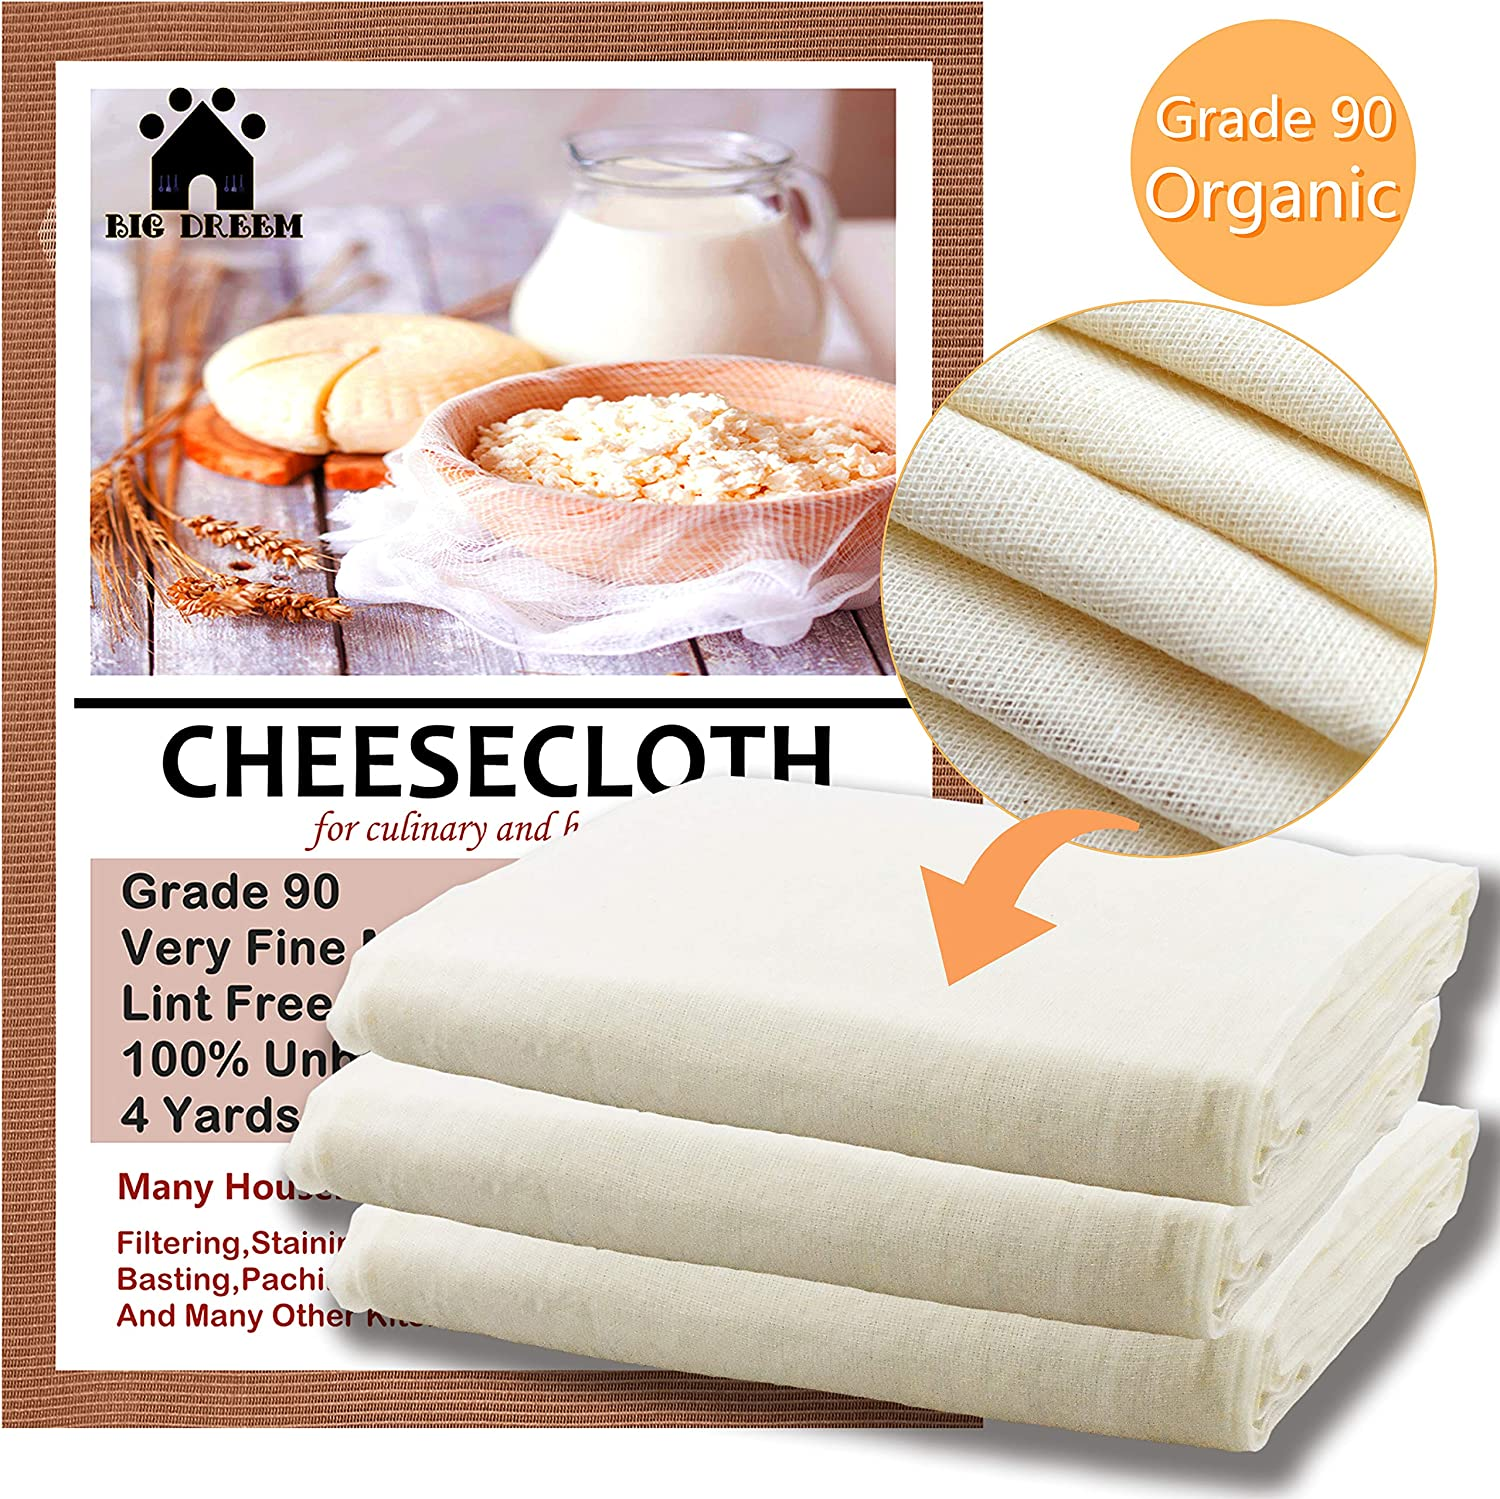 Ultra Fine Cheesecloth for Straining 100% Unbleached Cotton Fabric Grade 90 cheese cloth,Yogurt Strainer Muslin Cloth for Cooking,Filtering, Cheese and Hallowmas Decorations 36 sq.ft (cheesecloth)